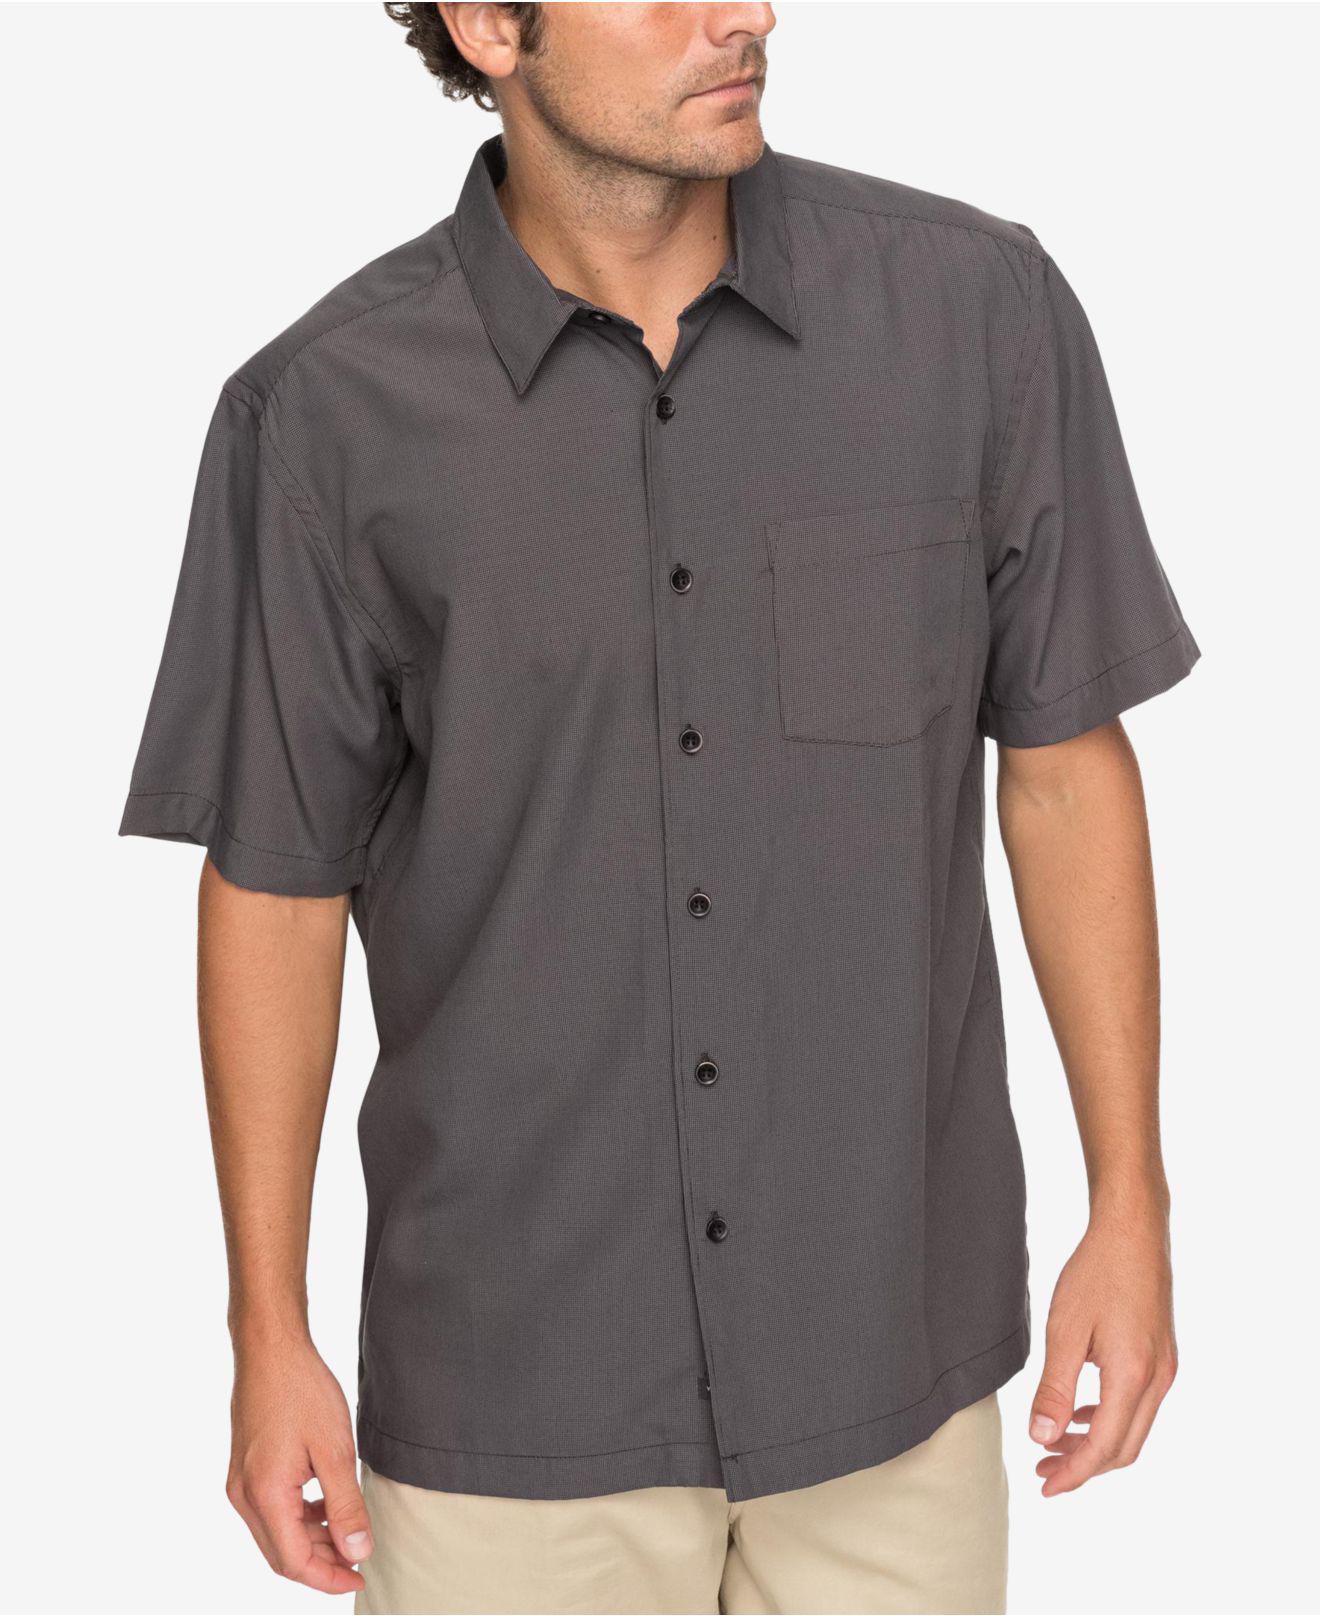 109b260ffe8a Lyst - Quiksilver Waterman Cane Island Shirt in Black for Men - Save 40%